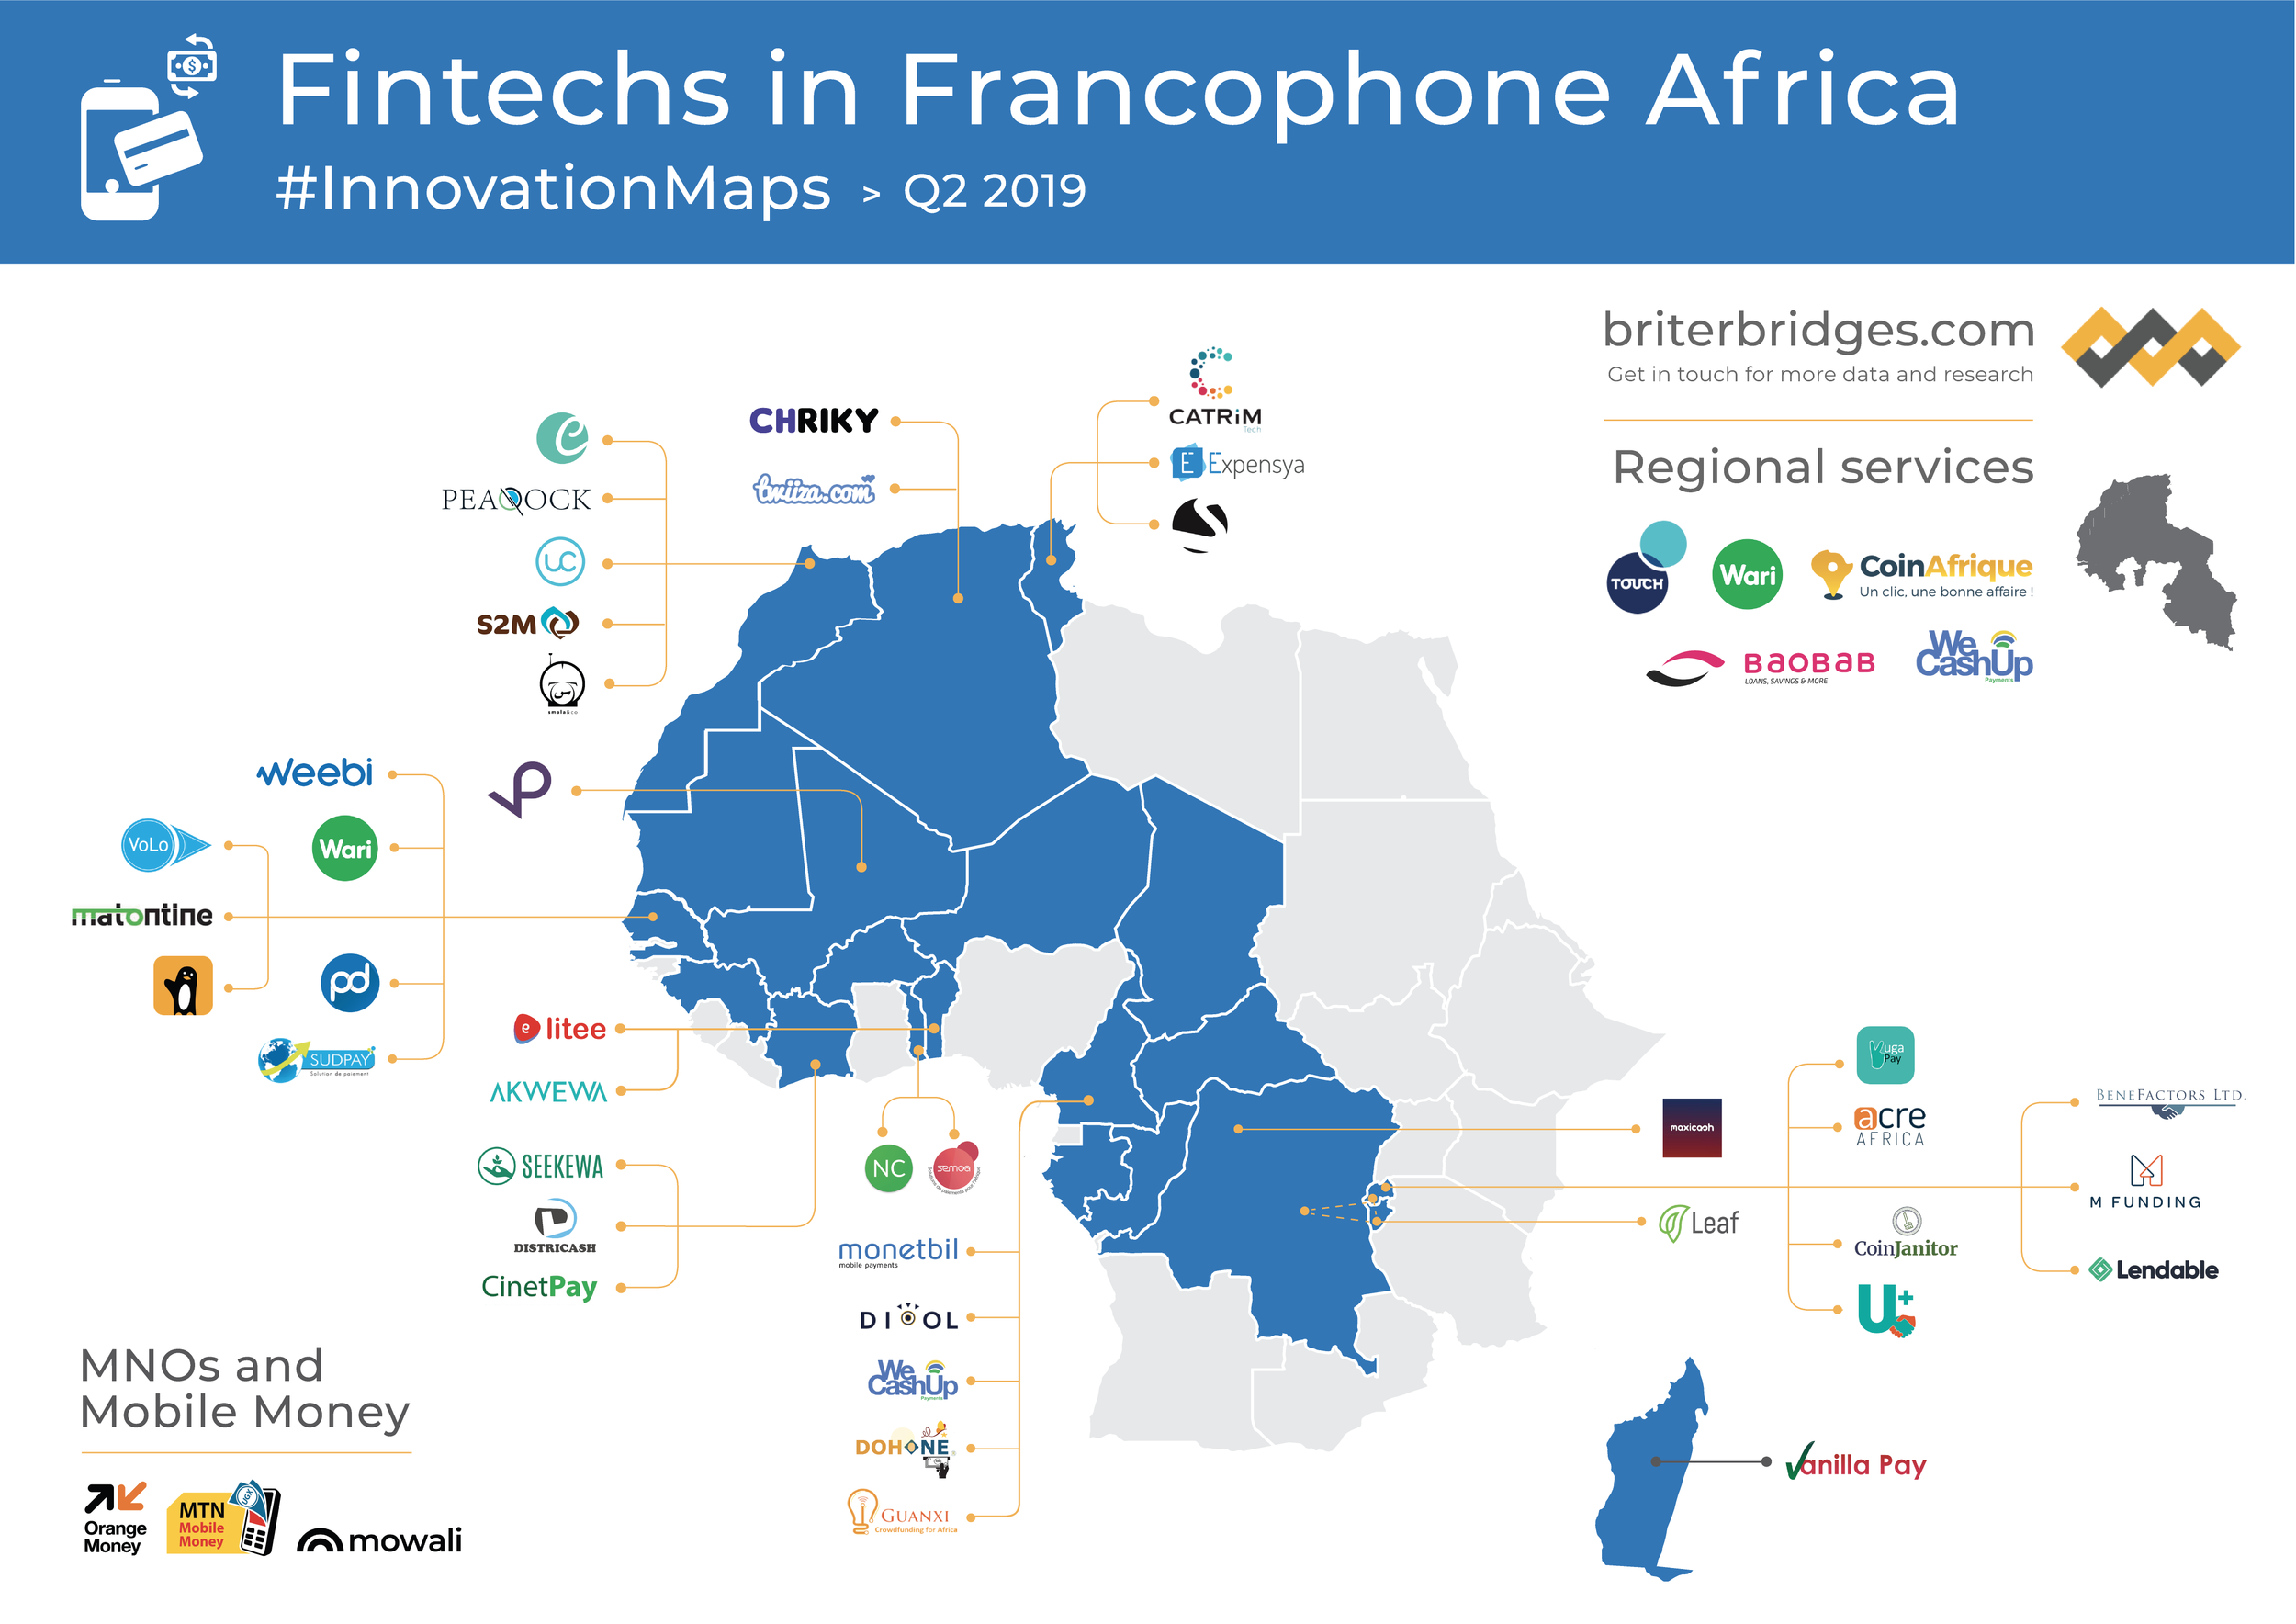 Fintechs in Francophone Africa